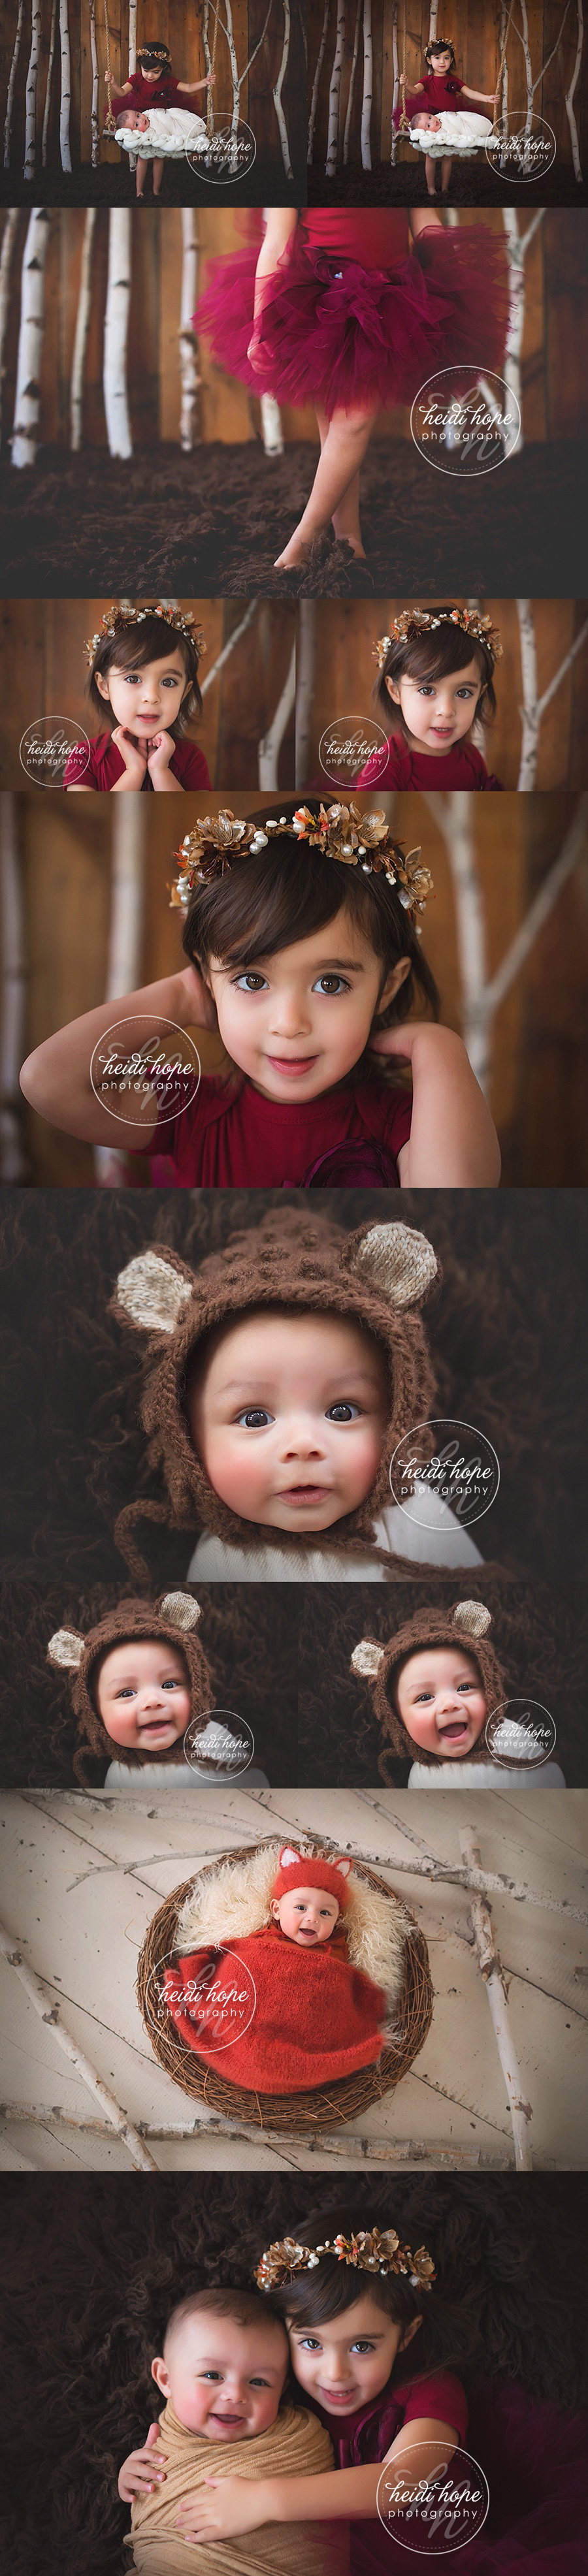 baby-and-sister-winter-studio-session-with-fox-woodland-theme